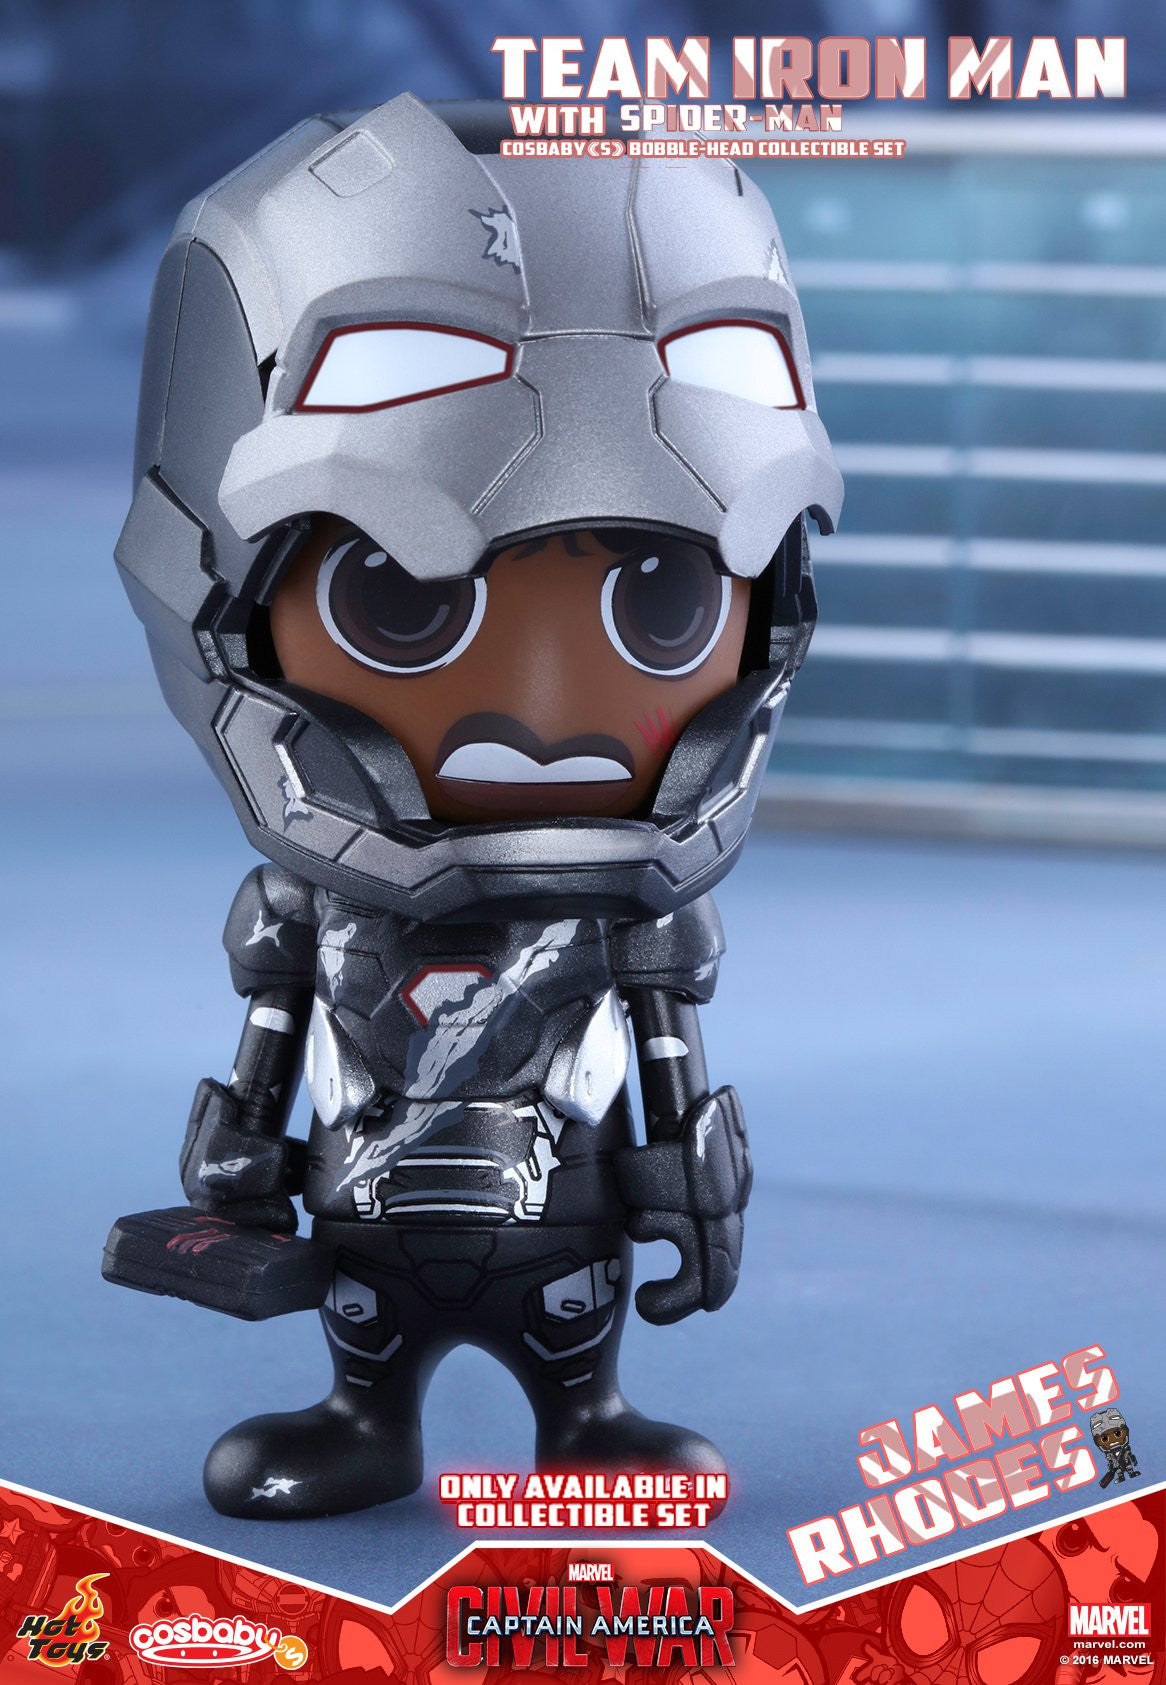 Hot Toys - COSB272 - Captain America Civil War – Team Iron Man With Spider-Man Cosbaby (S) Bobble-Head Collectible Set - Marvelous Toys - 4